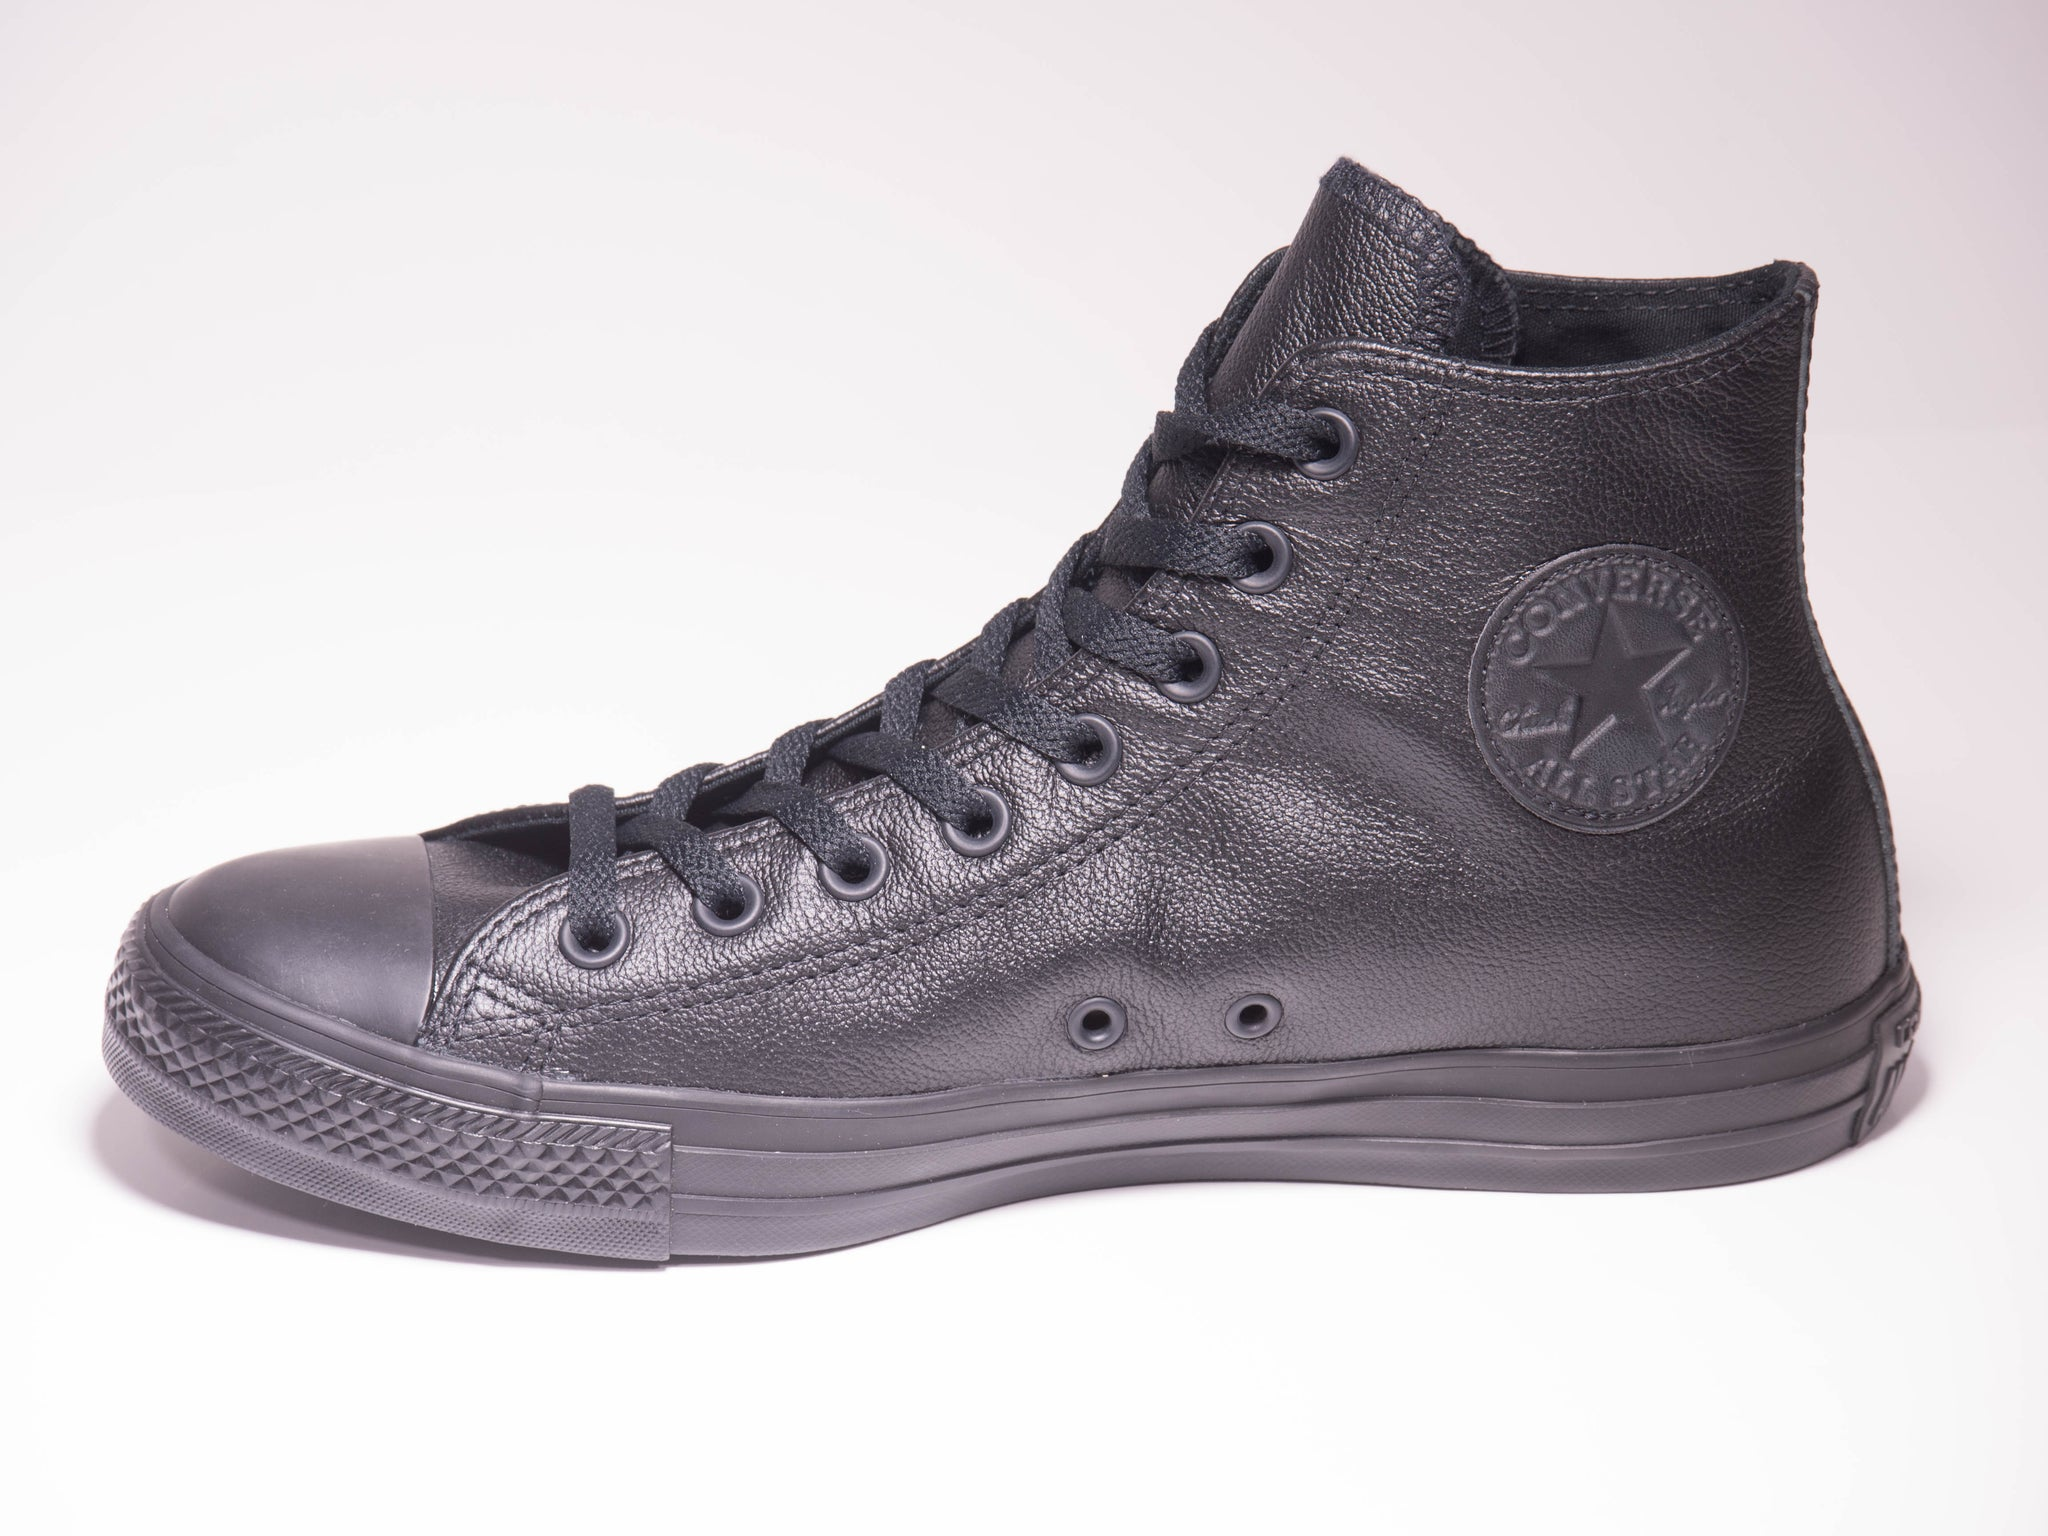 795df0f5f85b Converse Chuck Taylor All Star Leather High Top – Street Mobility